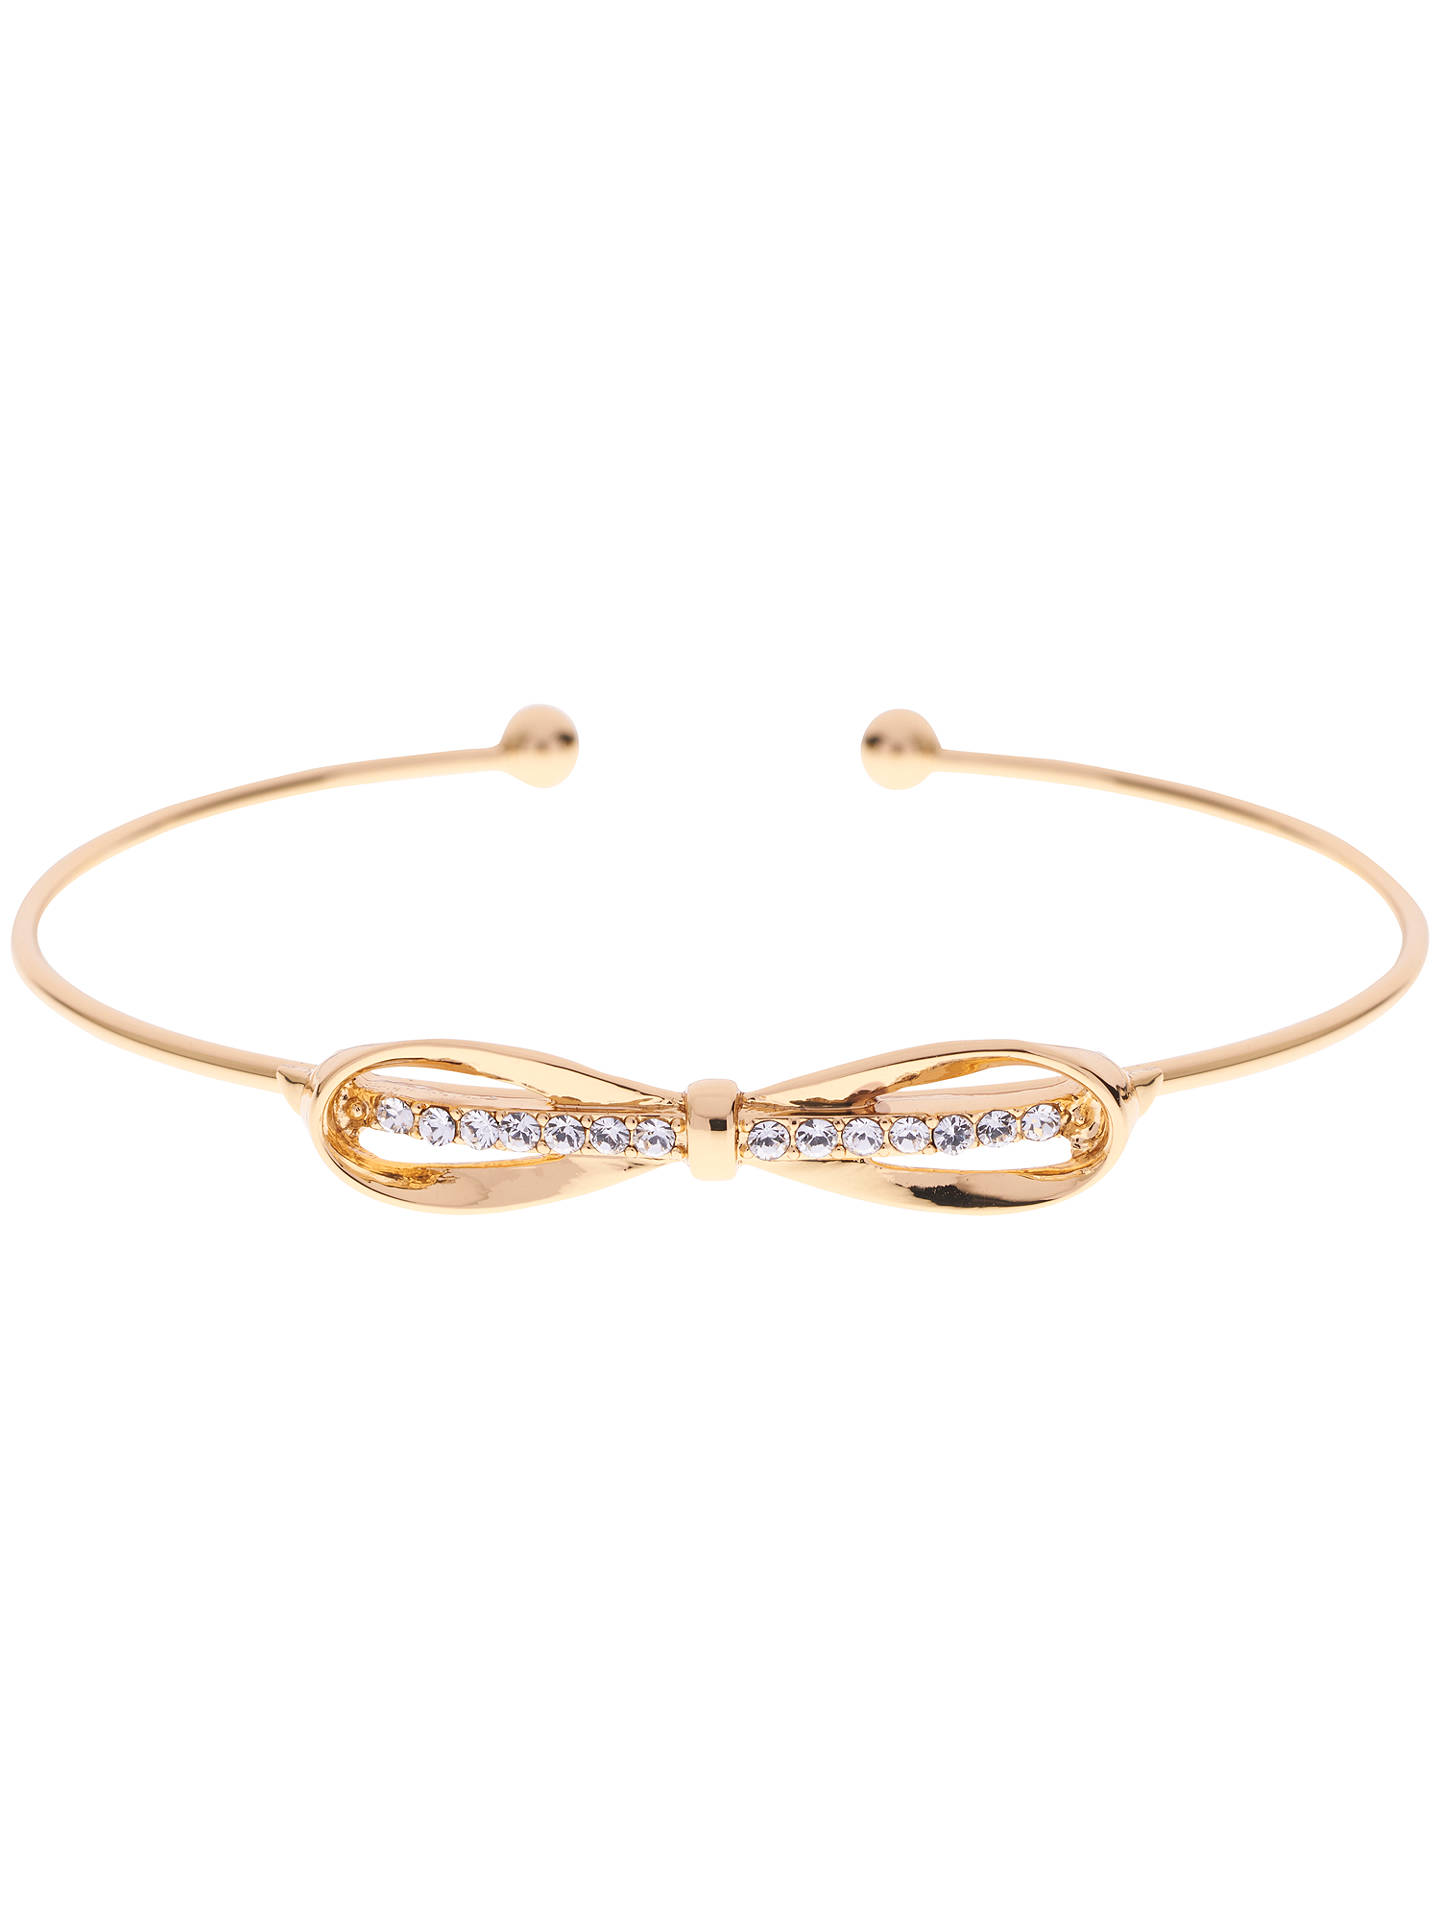 6f2f8cc2588f Ted Baker Sorina Bow Detail Crystal Cuff at John Lewis   Partners